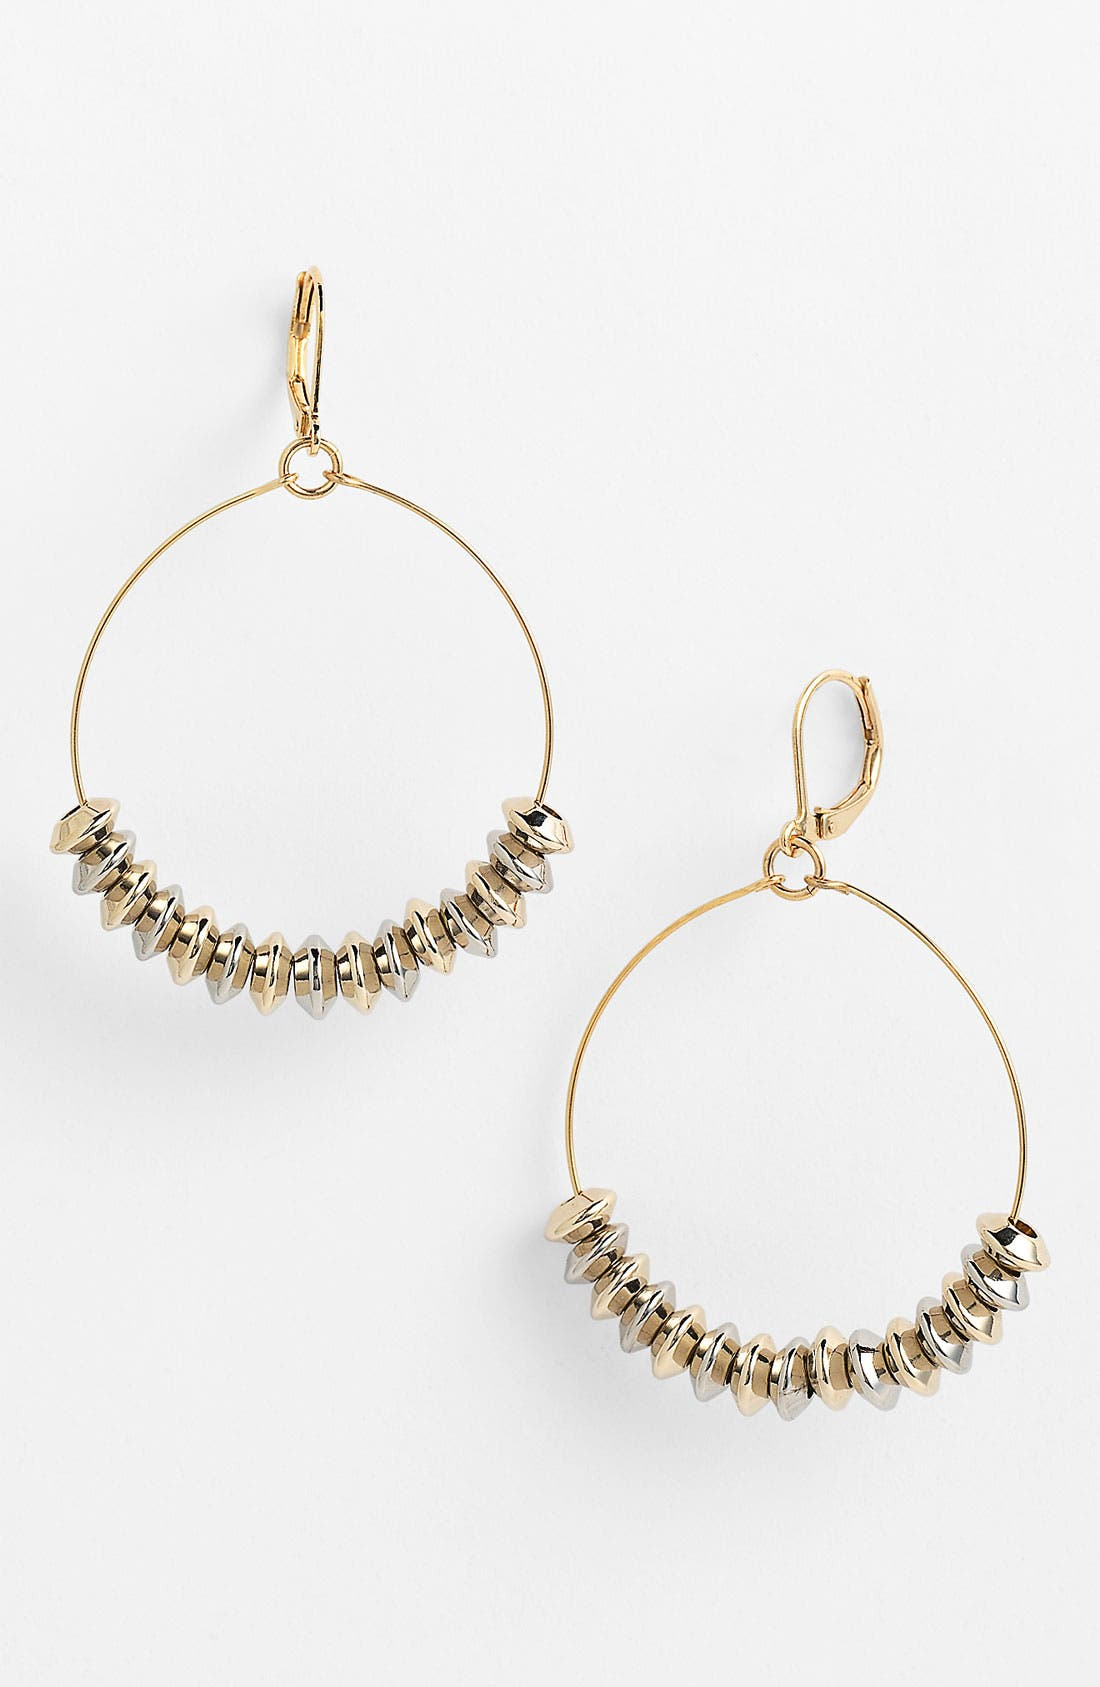 Alternate Image 1 Selected - Nordstrom 'Wisteria' Frontal Hoop Earrings